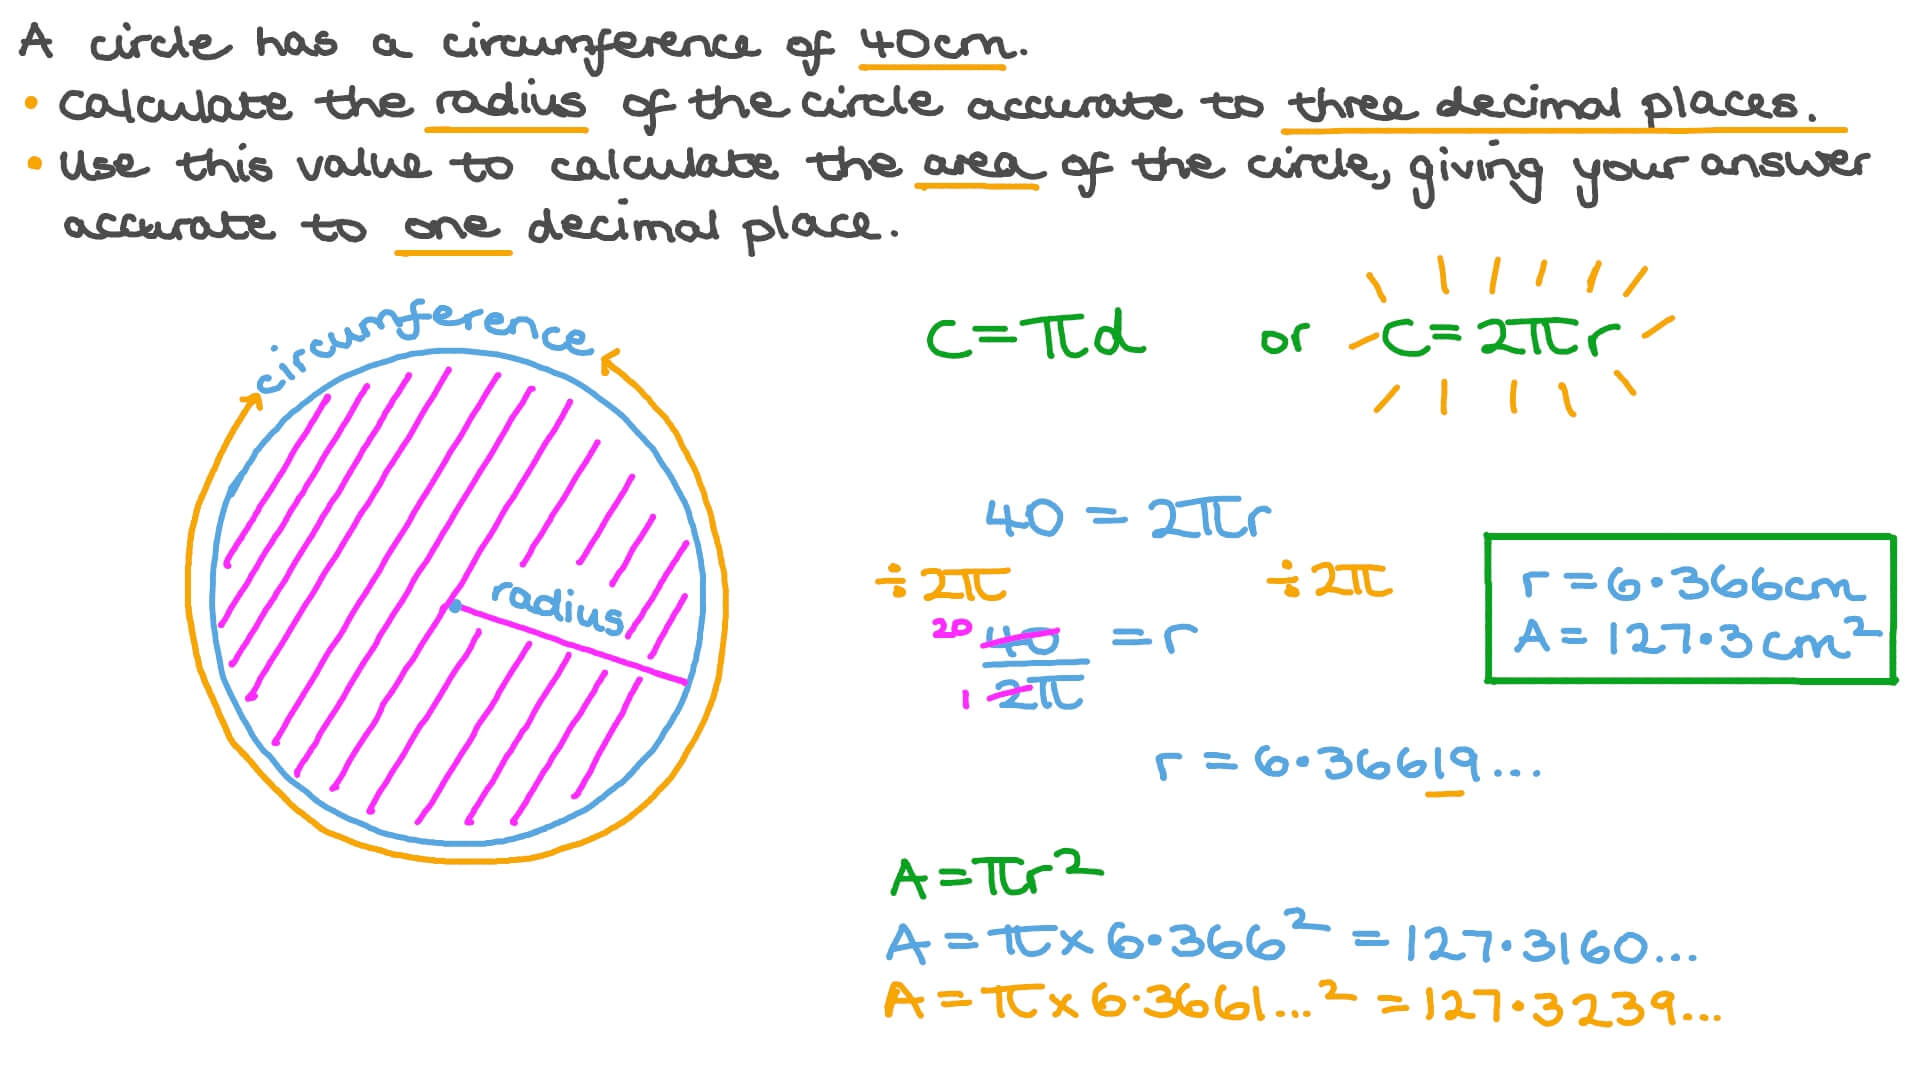 hight resolution of Question Video: Finding the Radius and Area of a Circle Given Its  Circumference   Nagwa